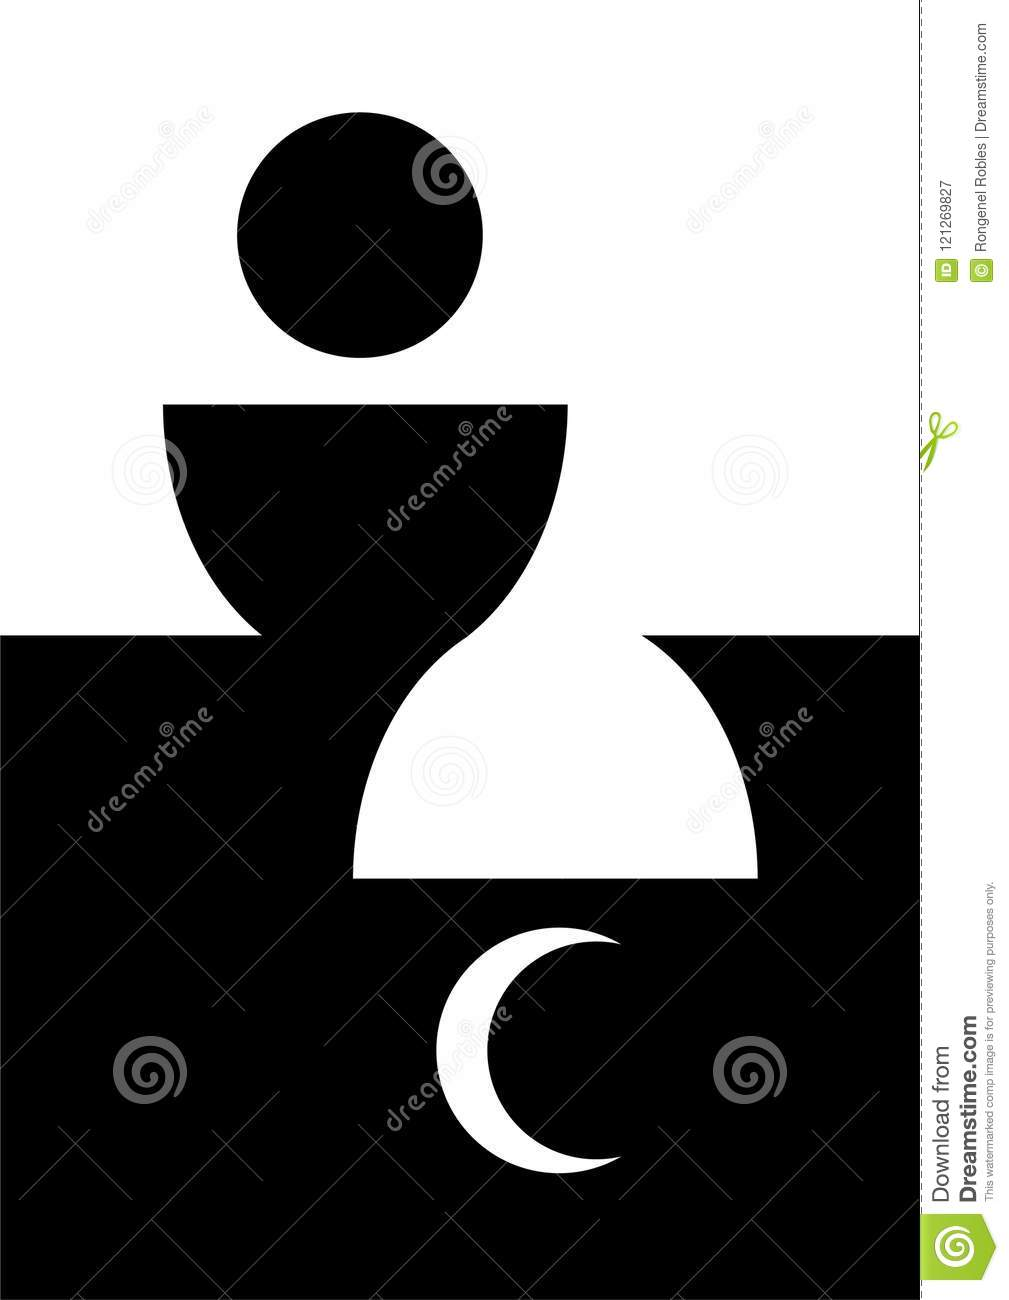 Abstract Image Of Host Bread Chalice And Religious Symbols Stock